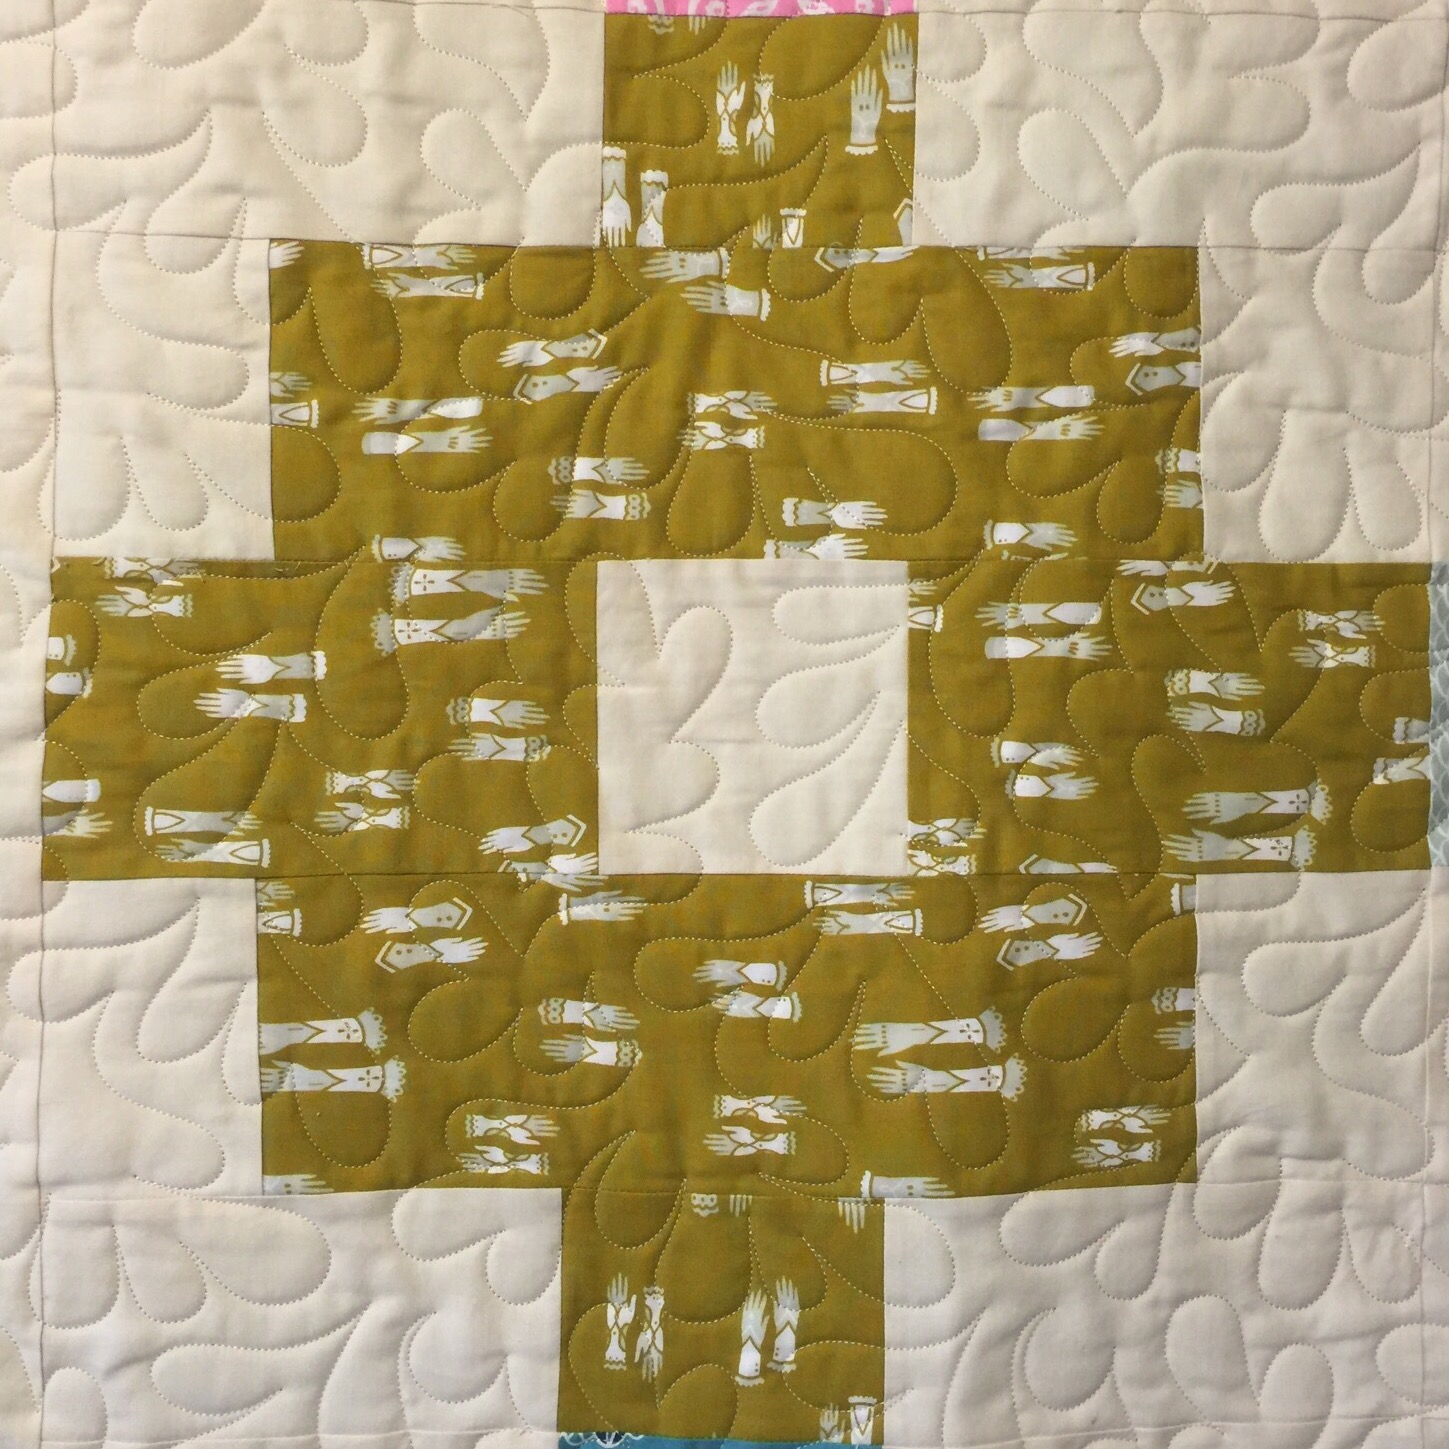 KatyQuilts | My musings on art and life…. | Page 101